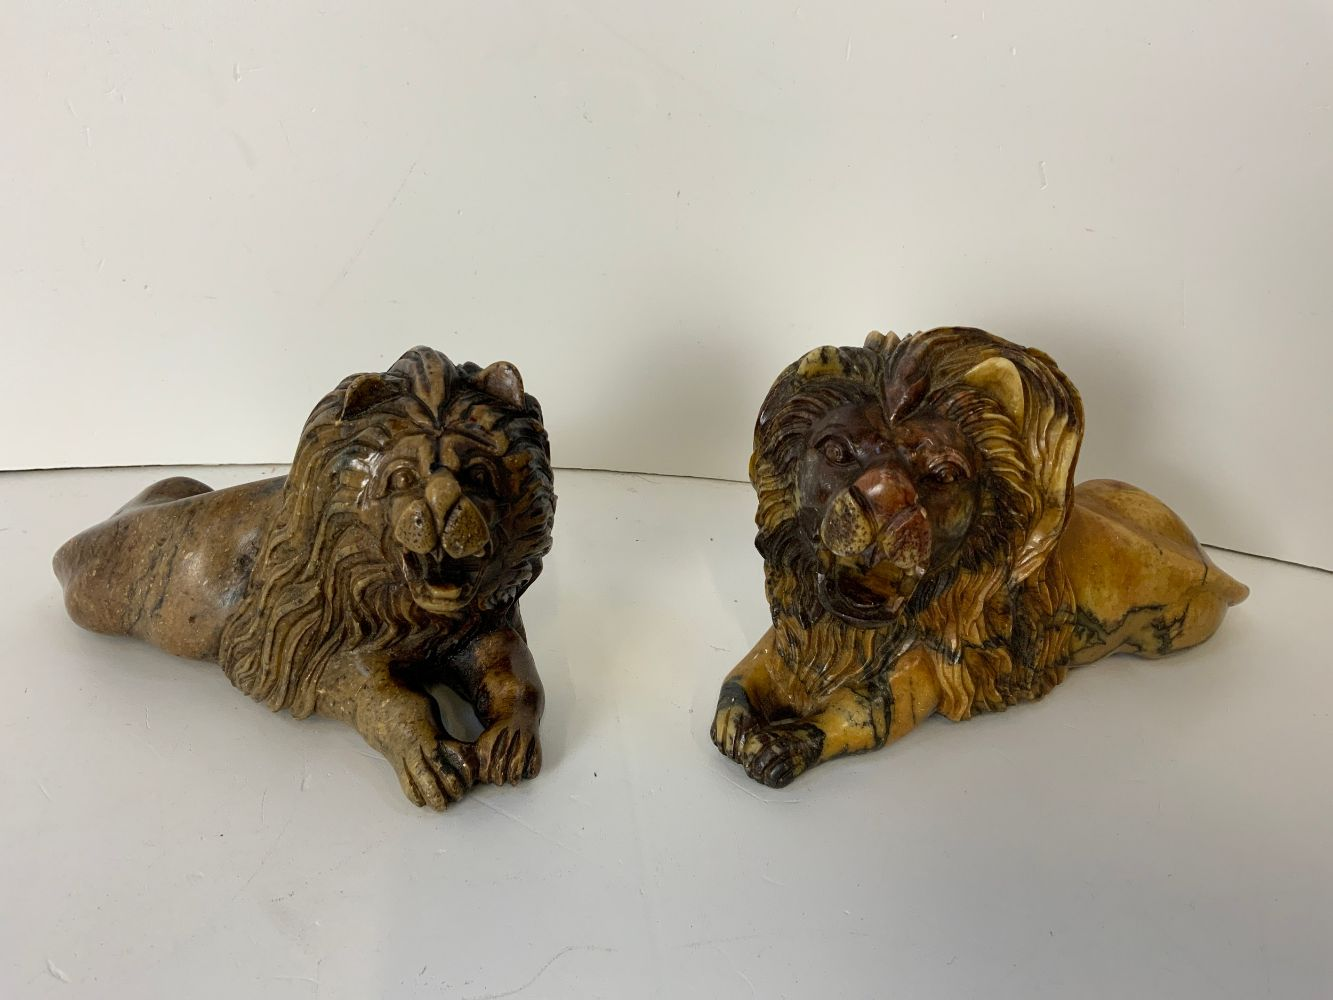 Homewares and Interiors Sale - Please see Auction Info re: Viewing